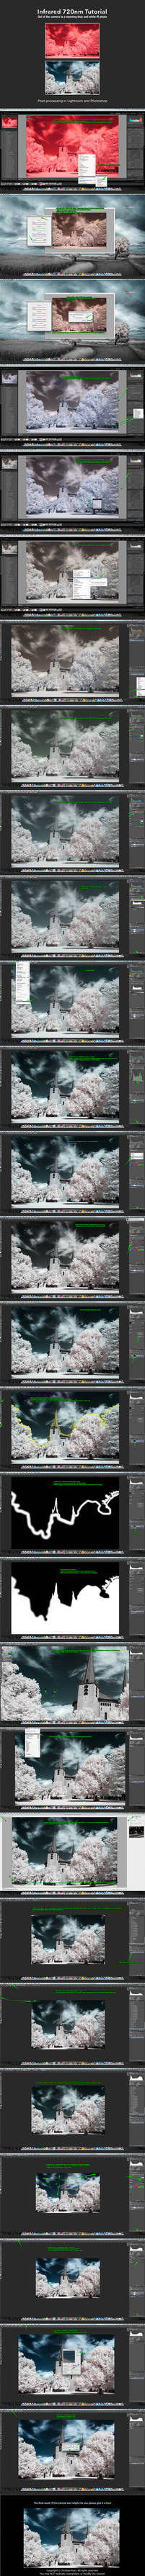 Infrared 720nm Post-processing Tutorial